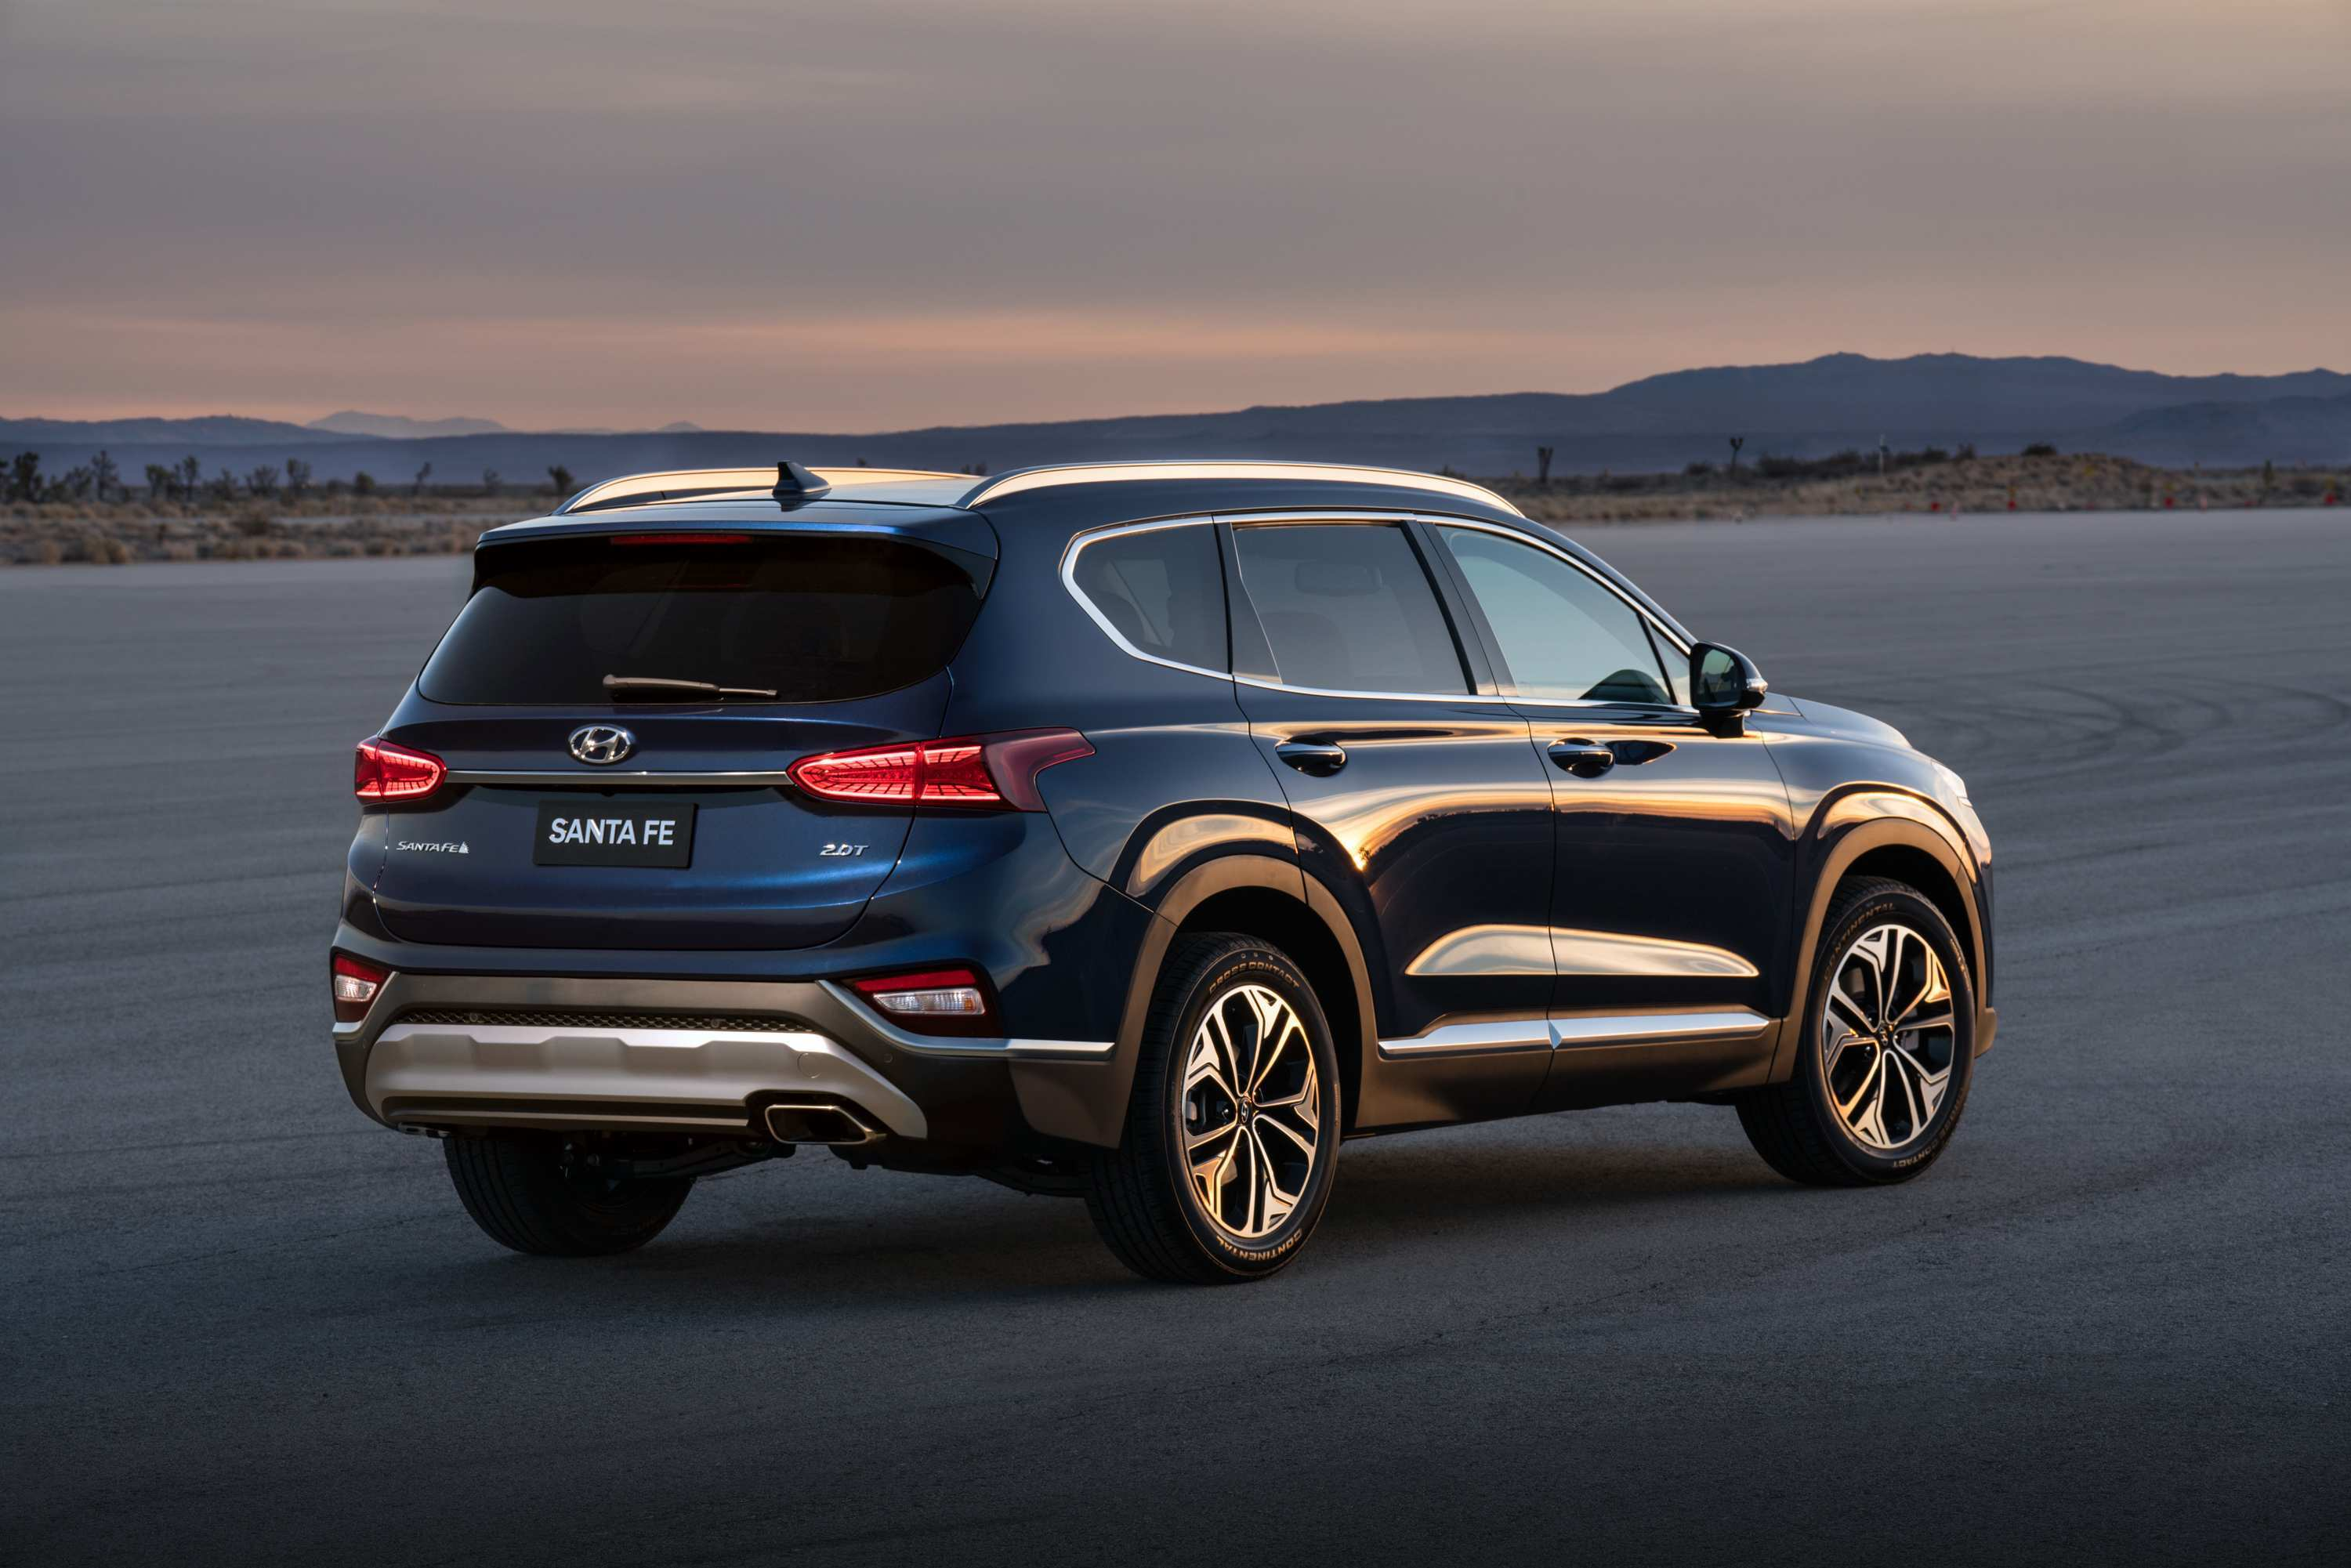 52 A New Hyundai Santa Fe 2020 Redesign And Review